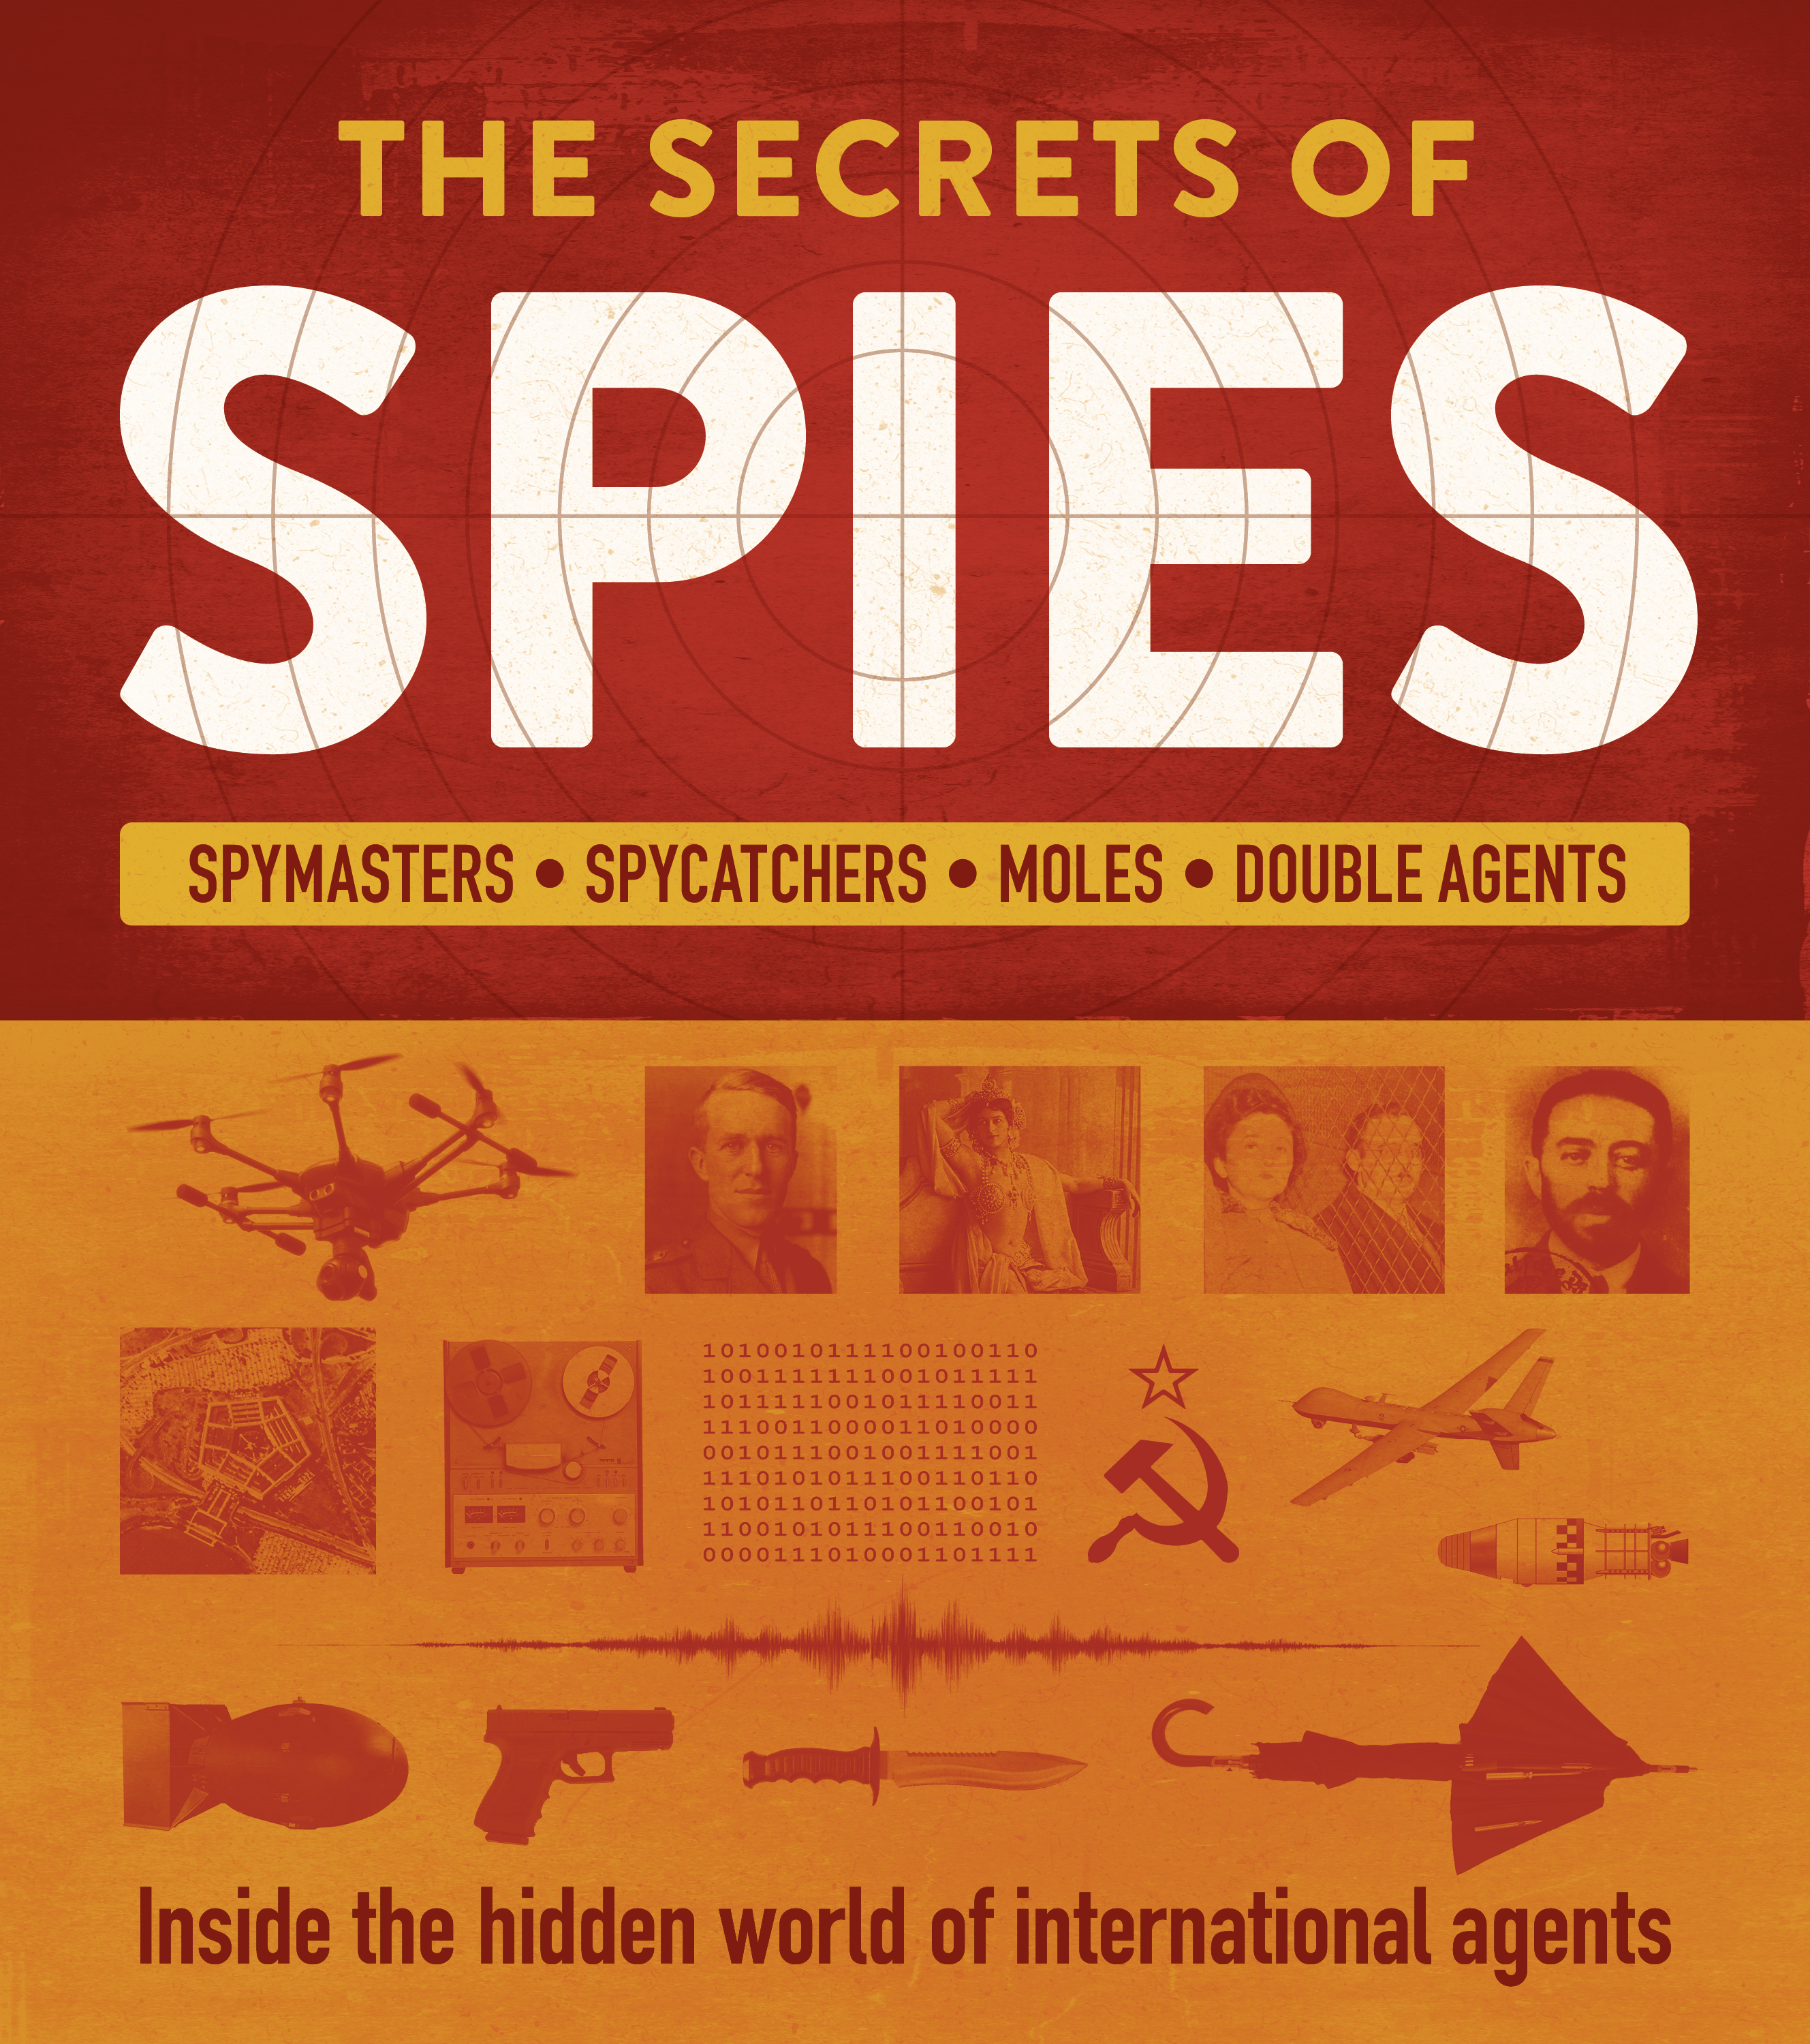 The Secrets of Spies